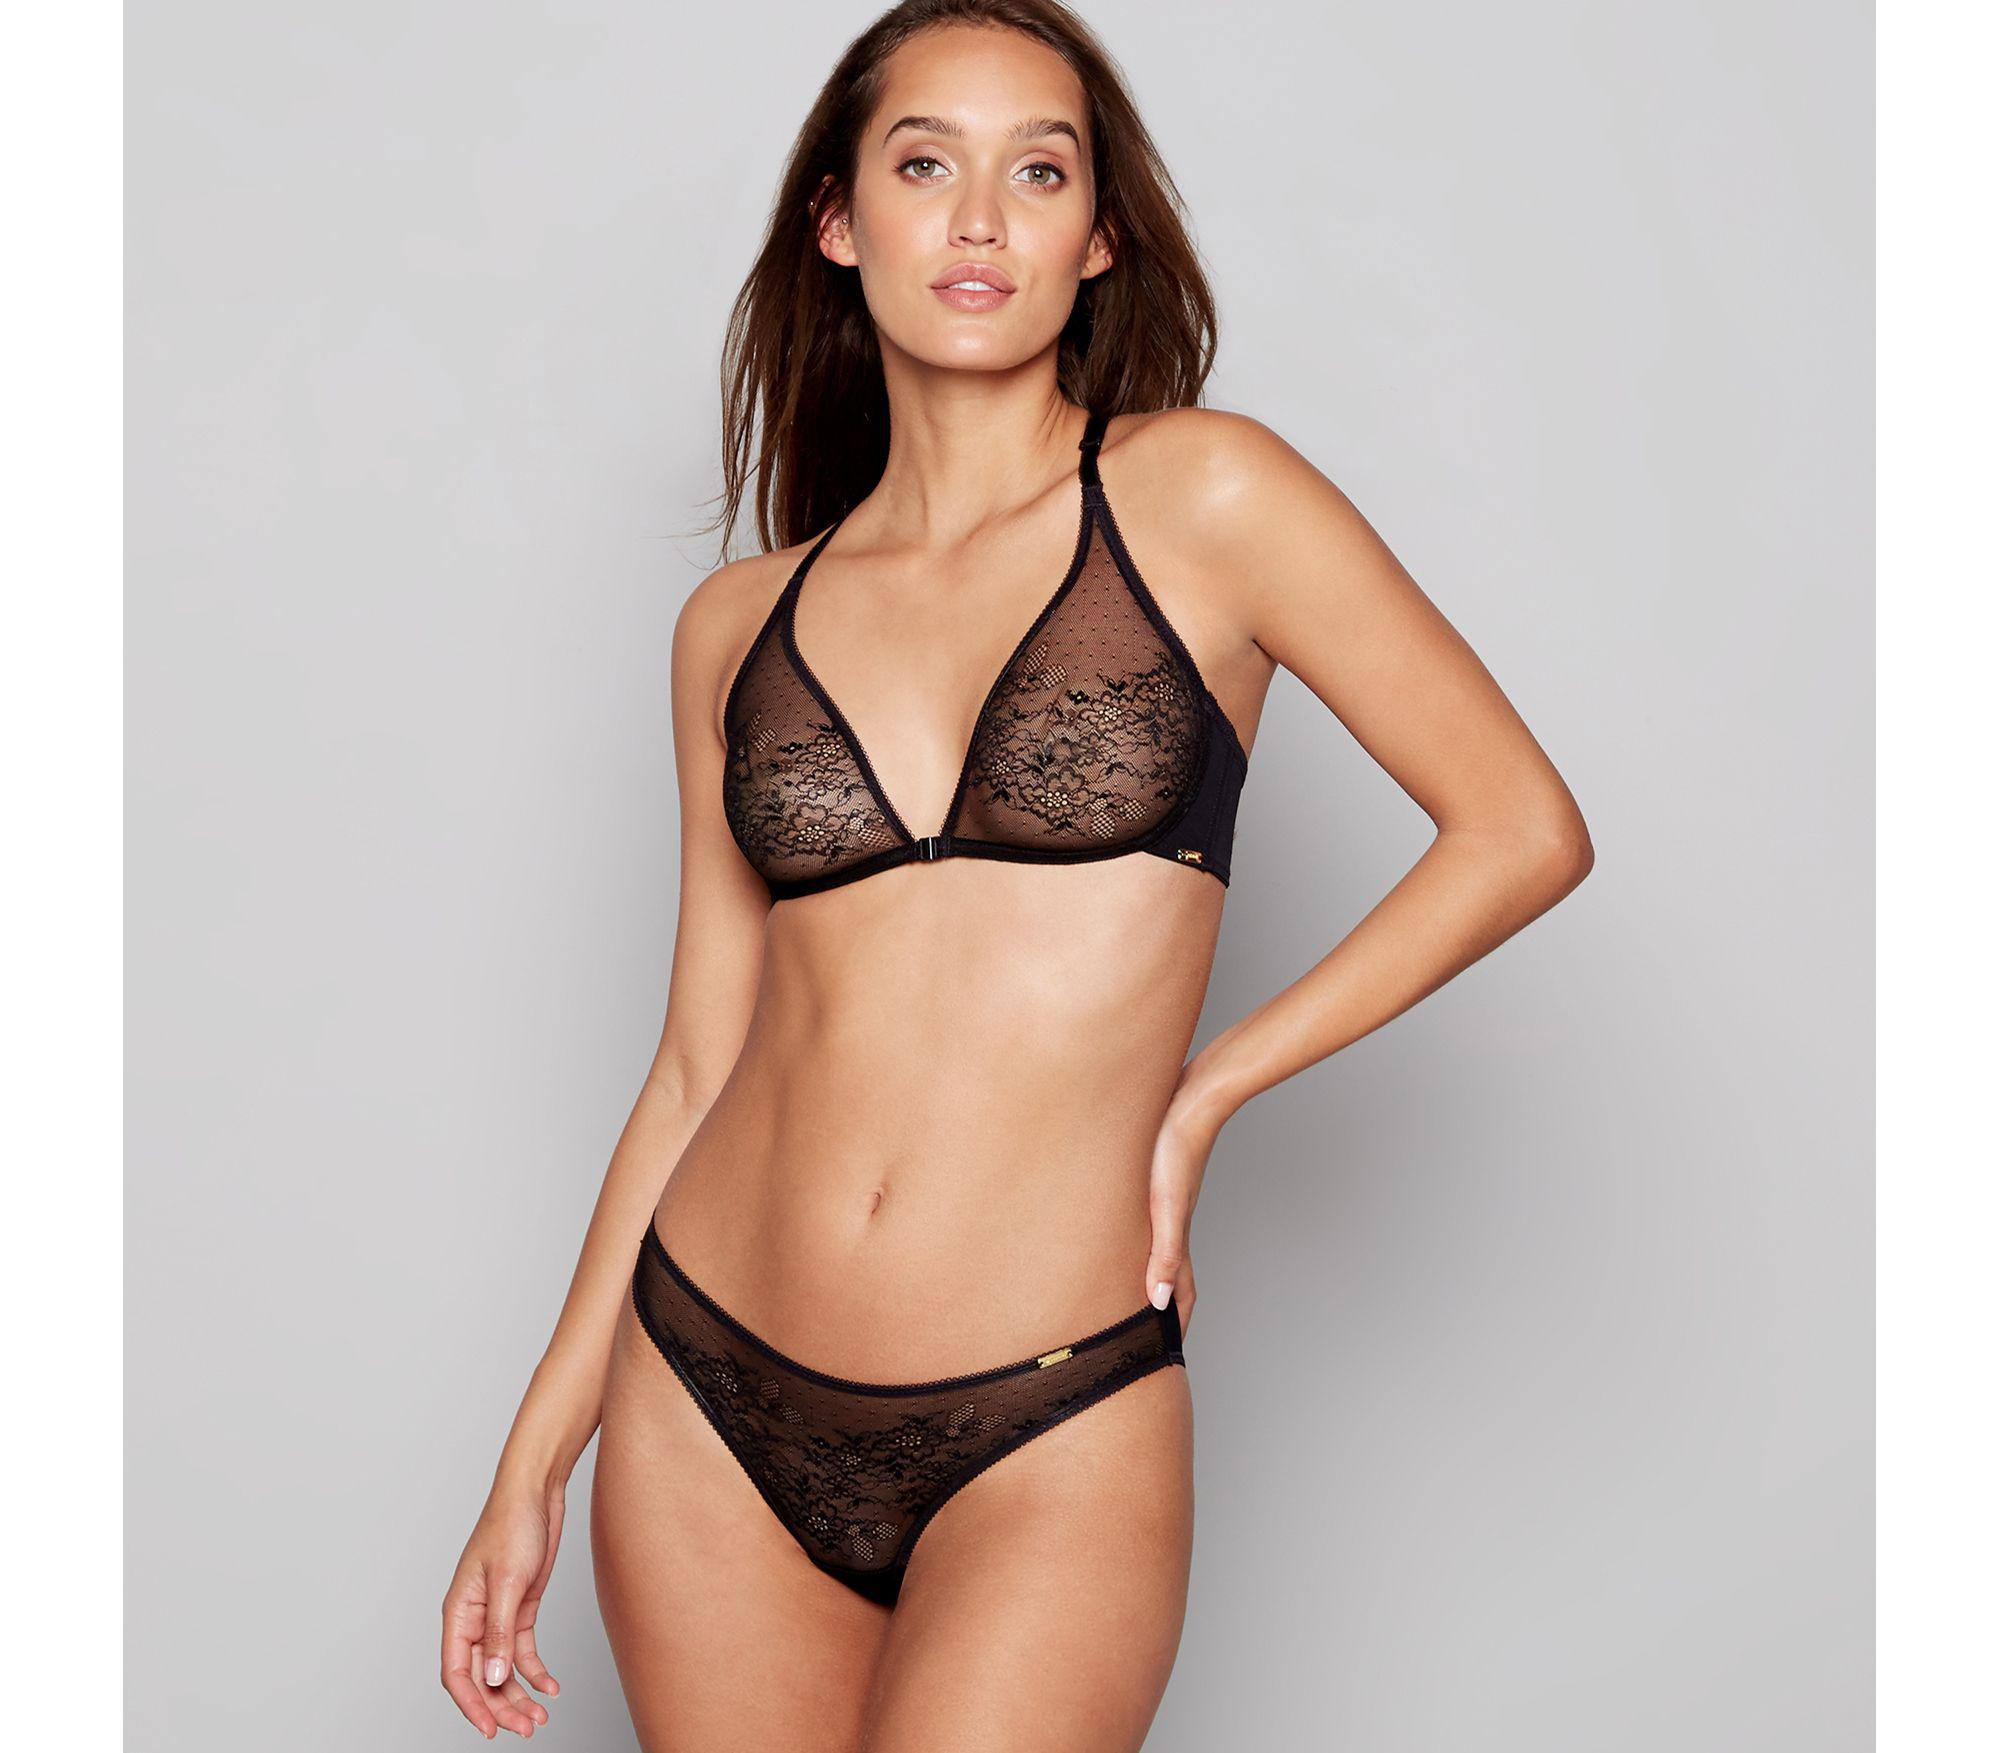 f92472def20a9 Gossard - Black Lace Non-wired Non-padded Triangle Bra - Lyst. View  fullscreen